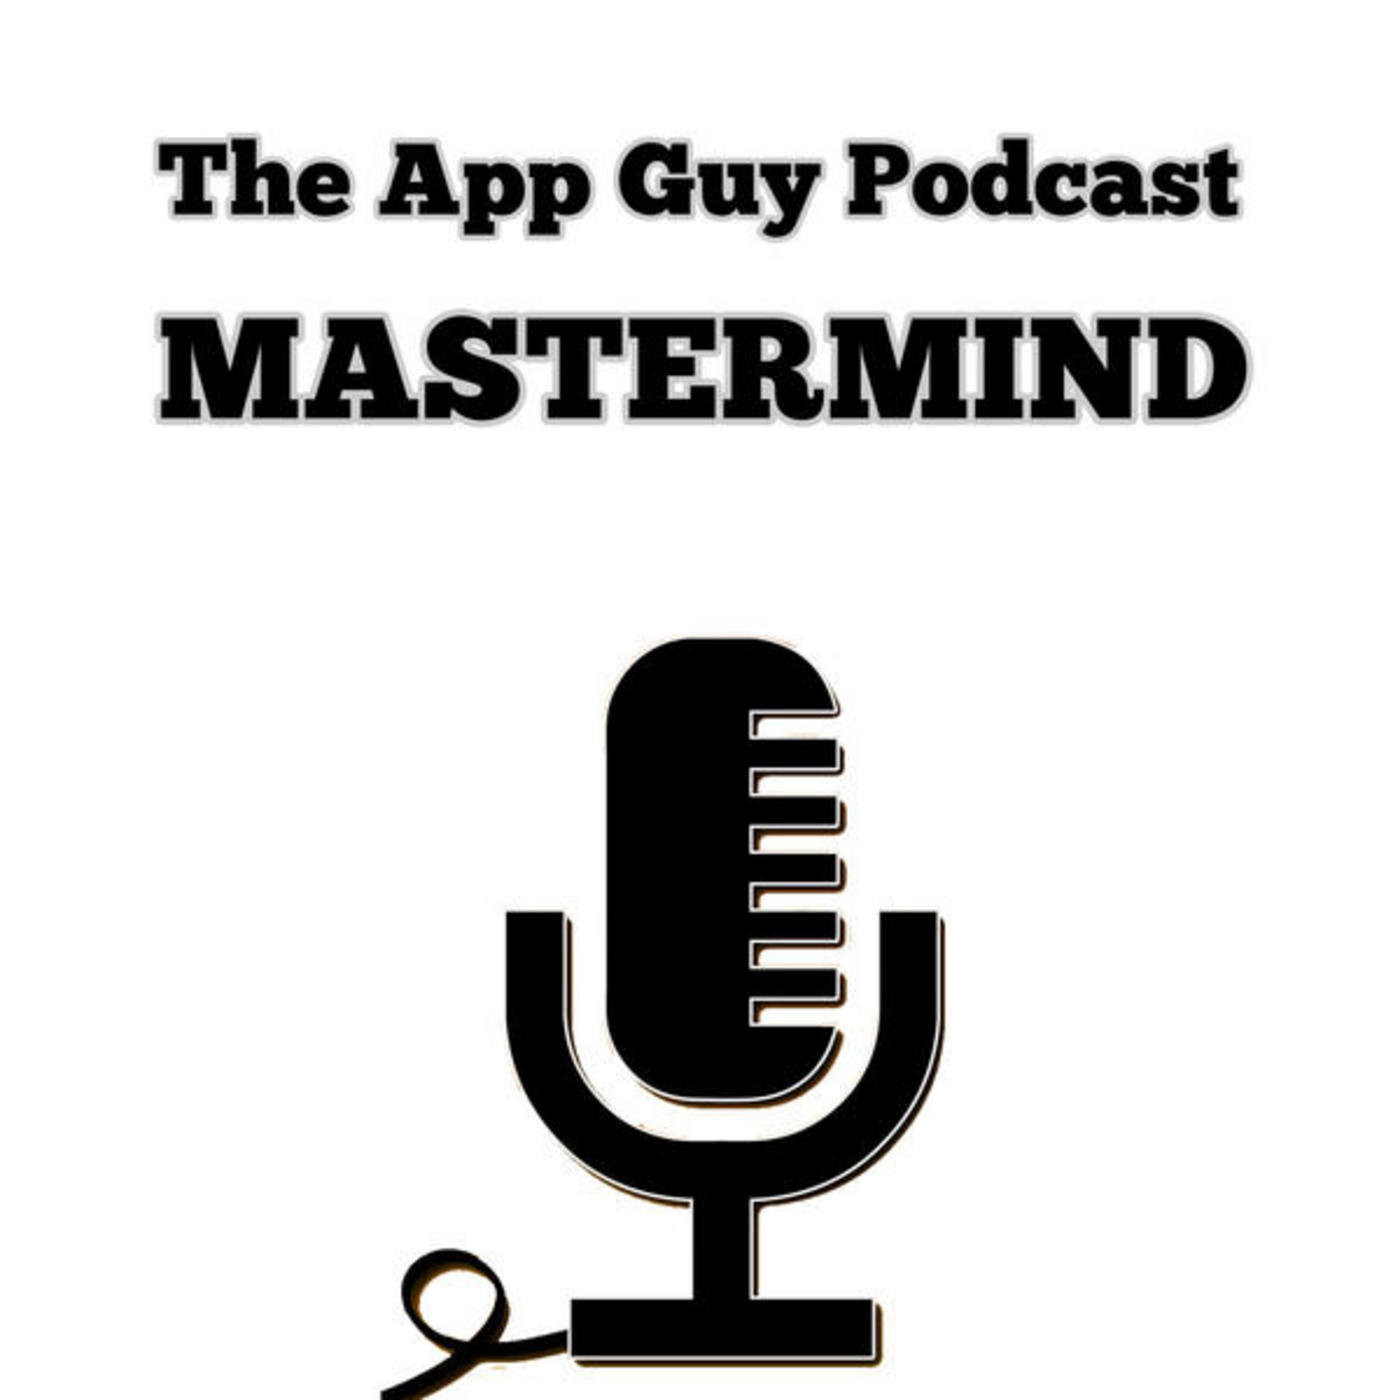 TAGP-Mastermind 12 - hiring an app developer to live in Hawaii